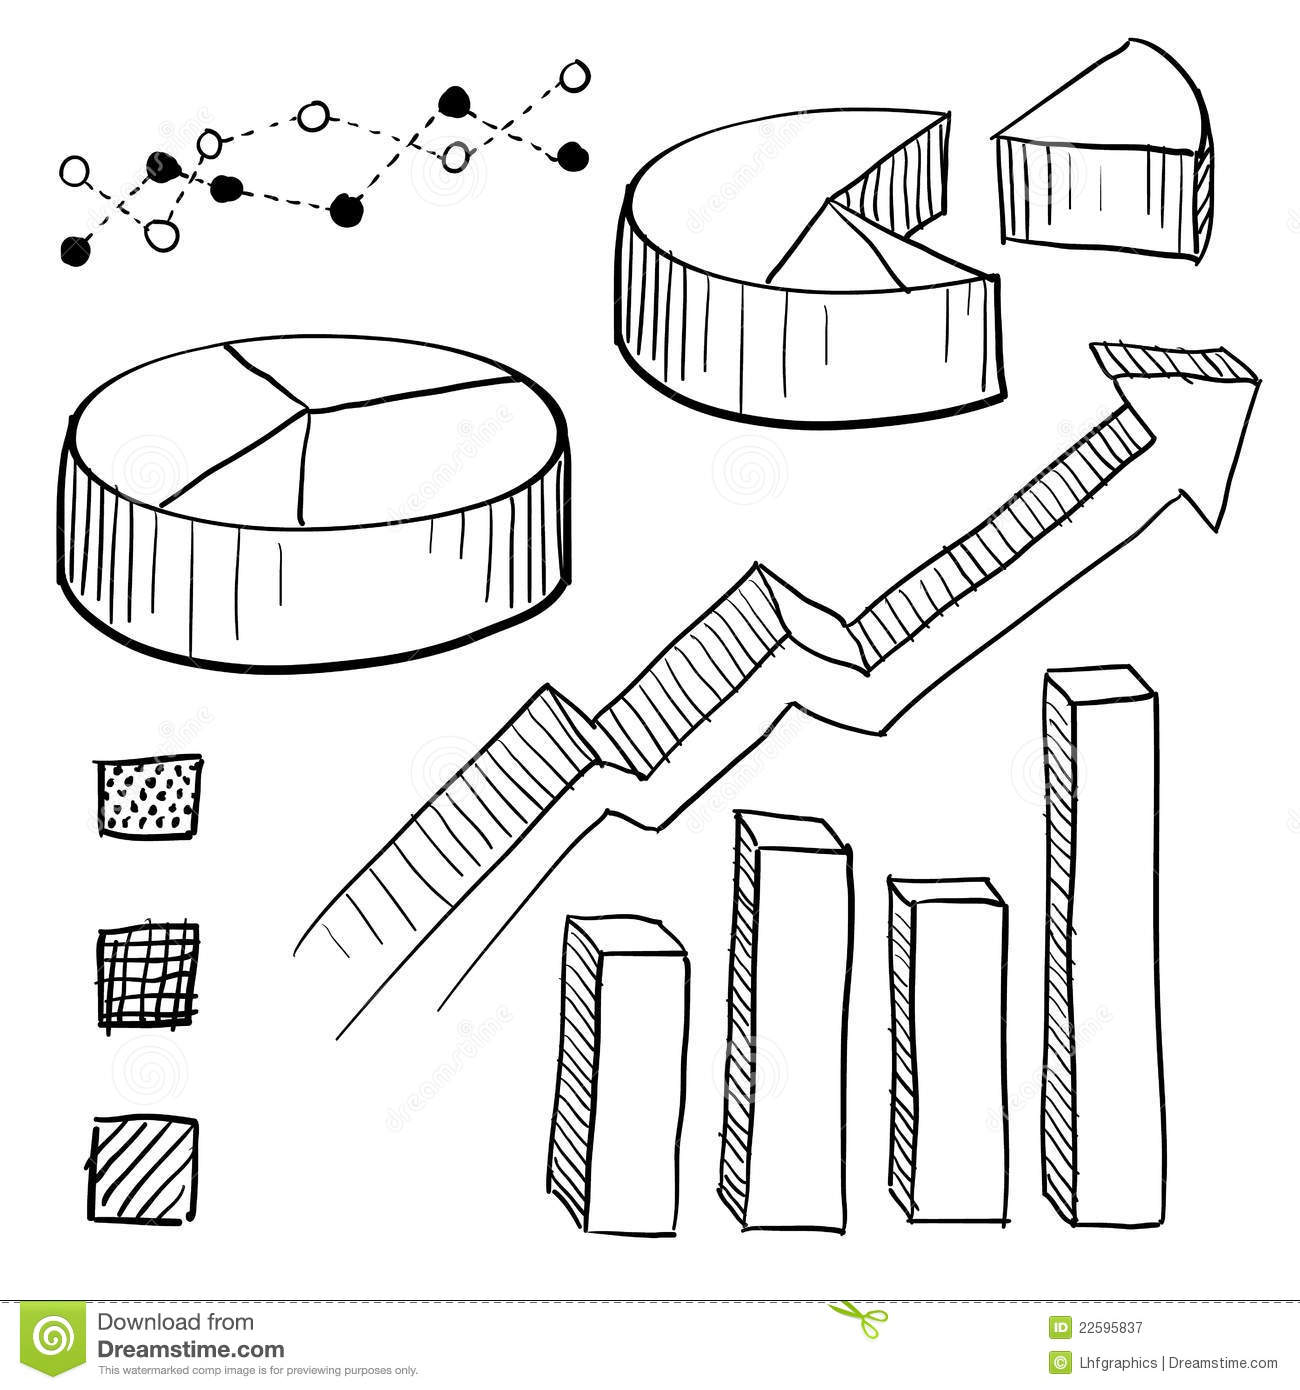 graph and chart elements sketch stock vector